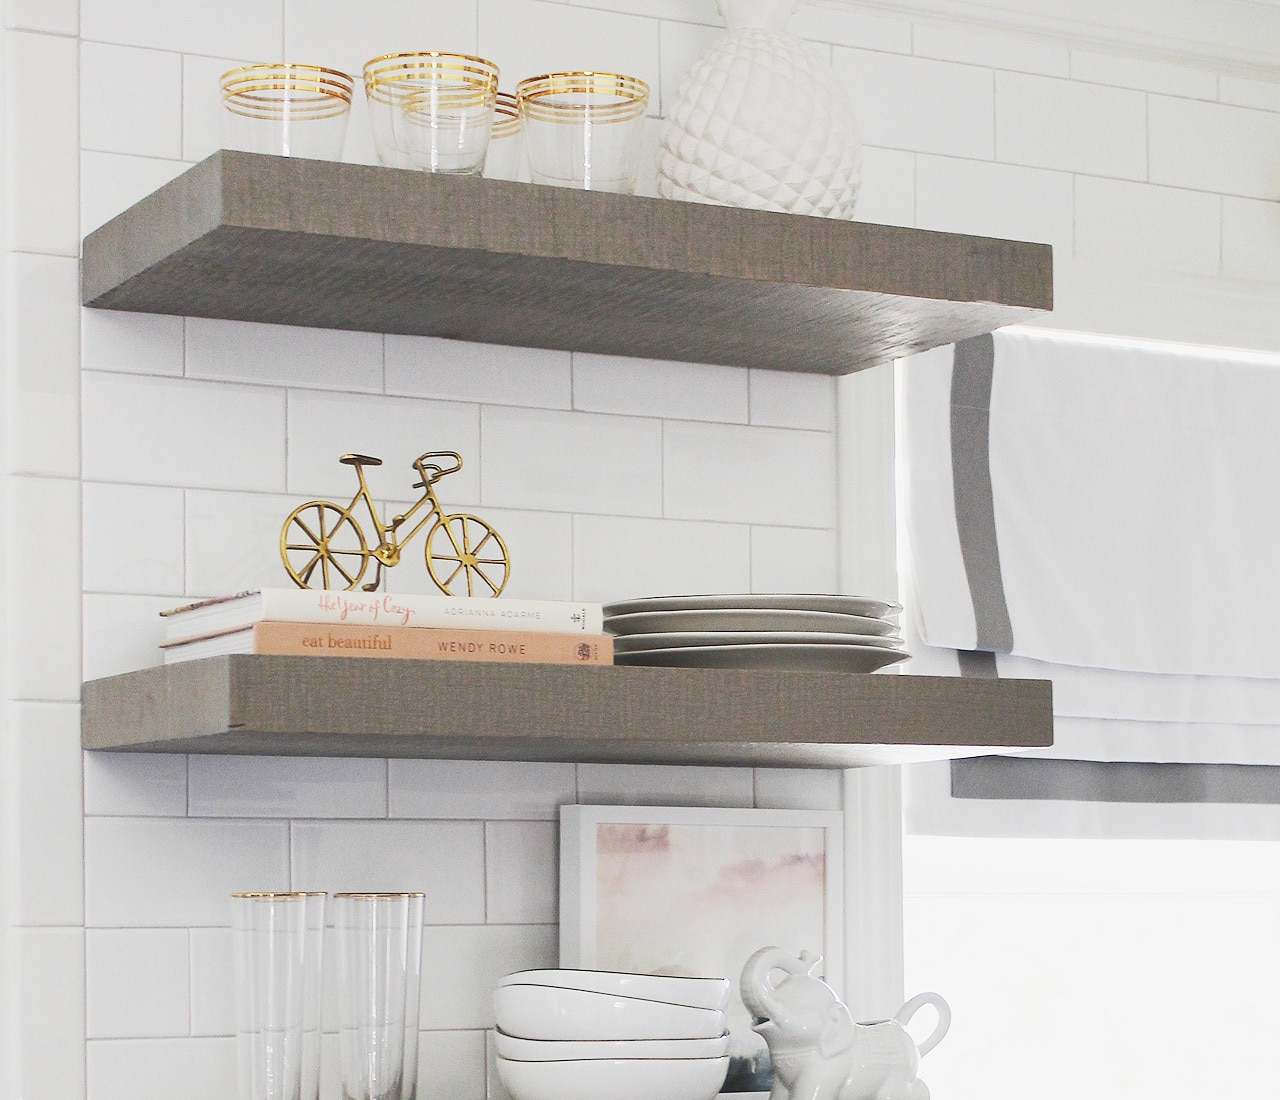 floating shelf bracket fits inch shelves gray kitchen light deep easily install with our steel installing vinyl flooring over plywood ikea build your own wardrobe designs without